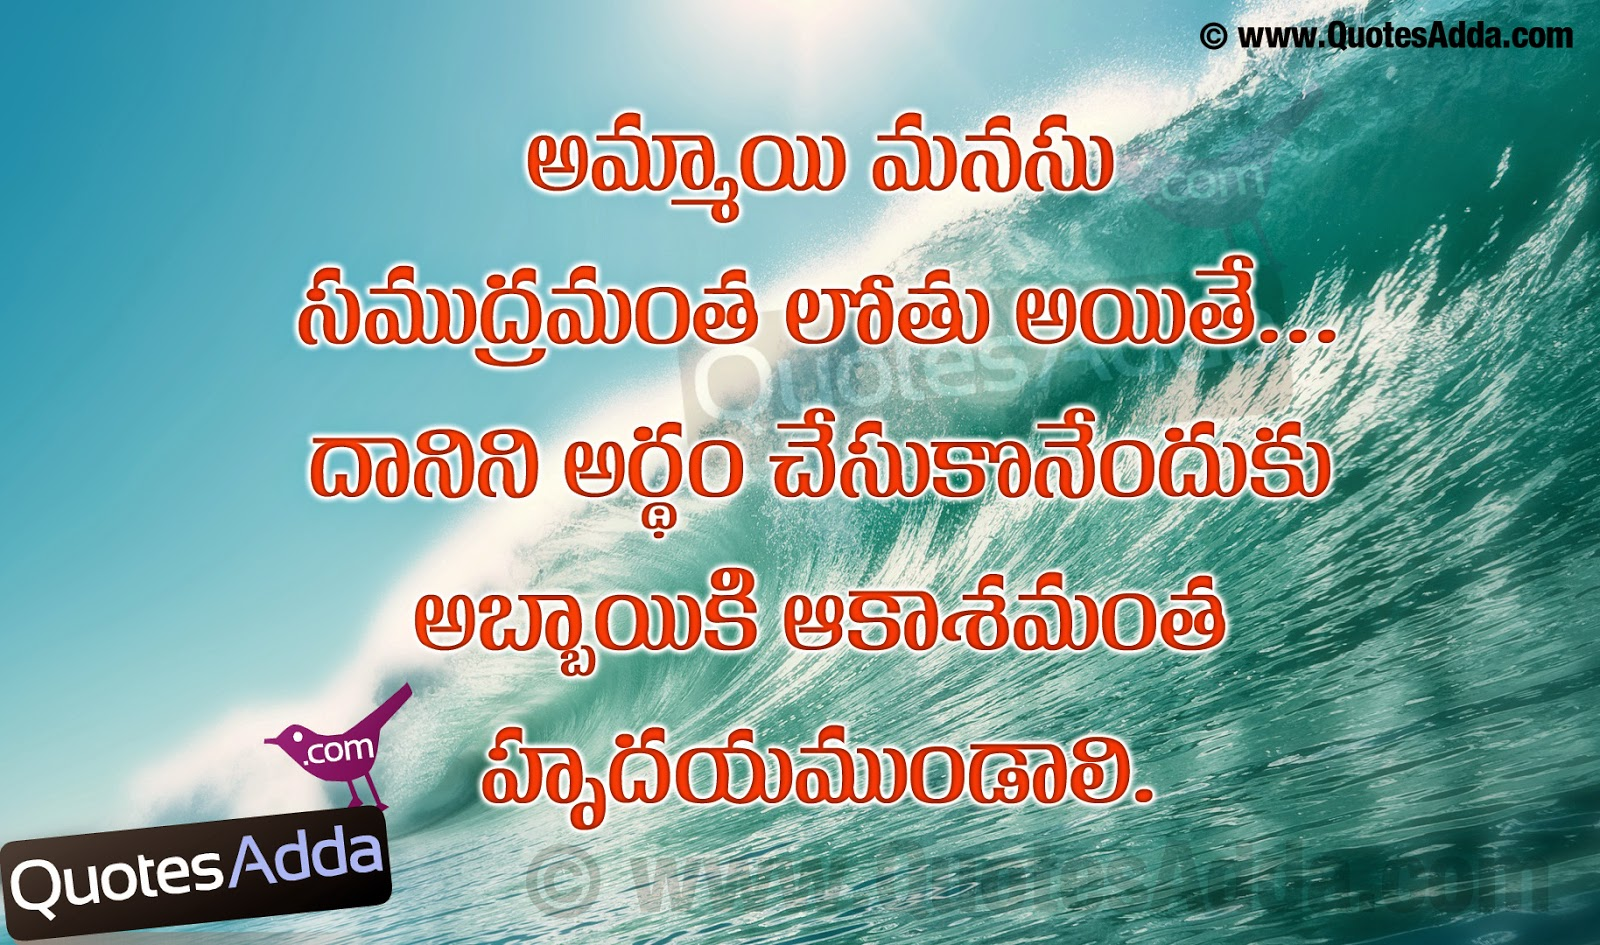 Telugu Love Quotes Pleasing Telugunewlovequotationsjun29Quotesadda 1600×945